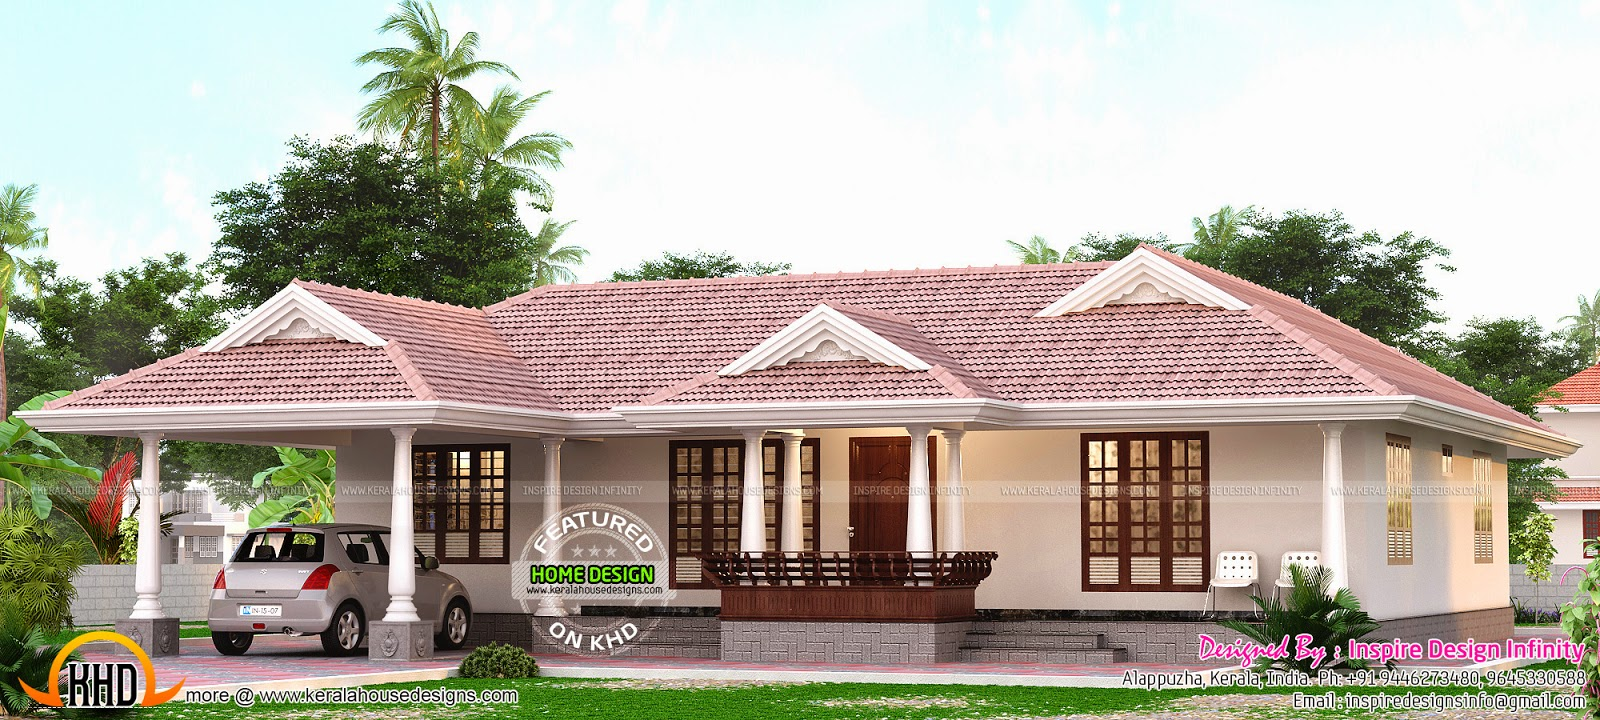 Kerala model single storied home kerala home design and for Home models in kerala